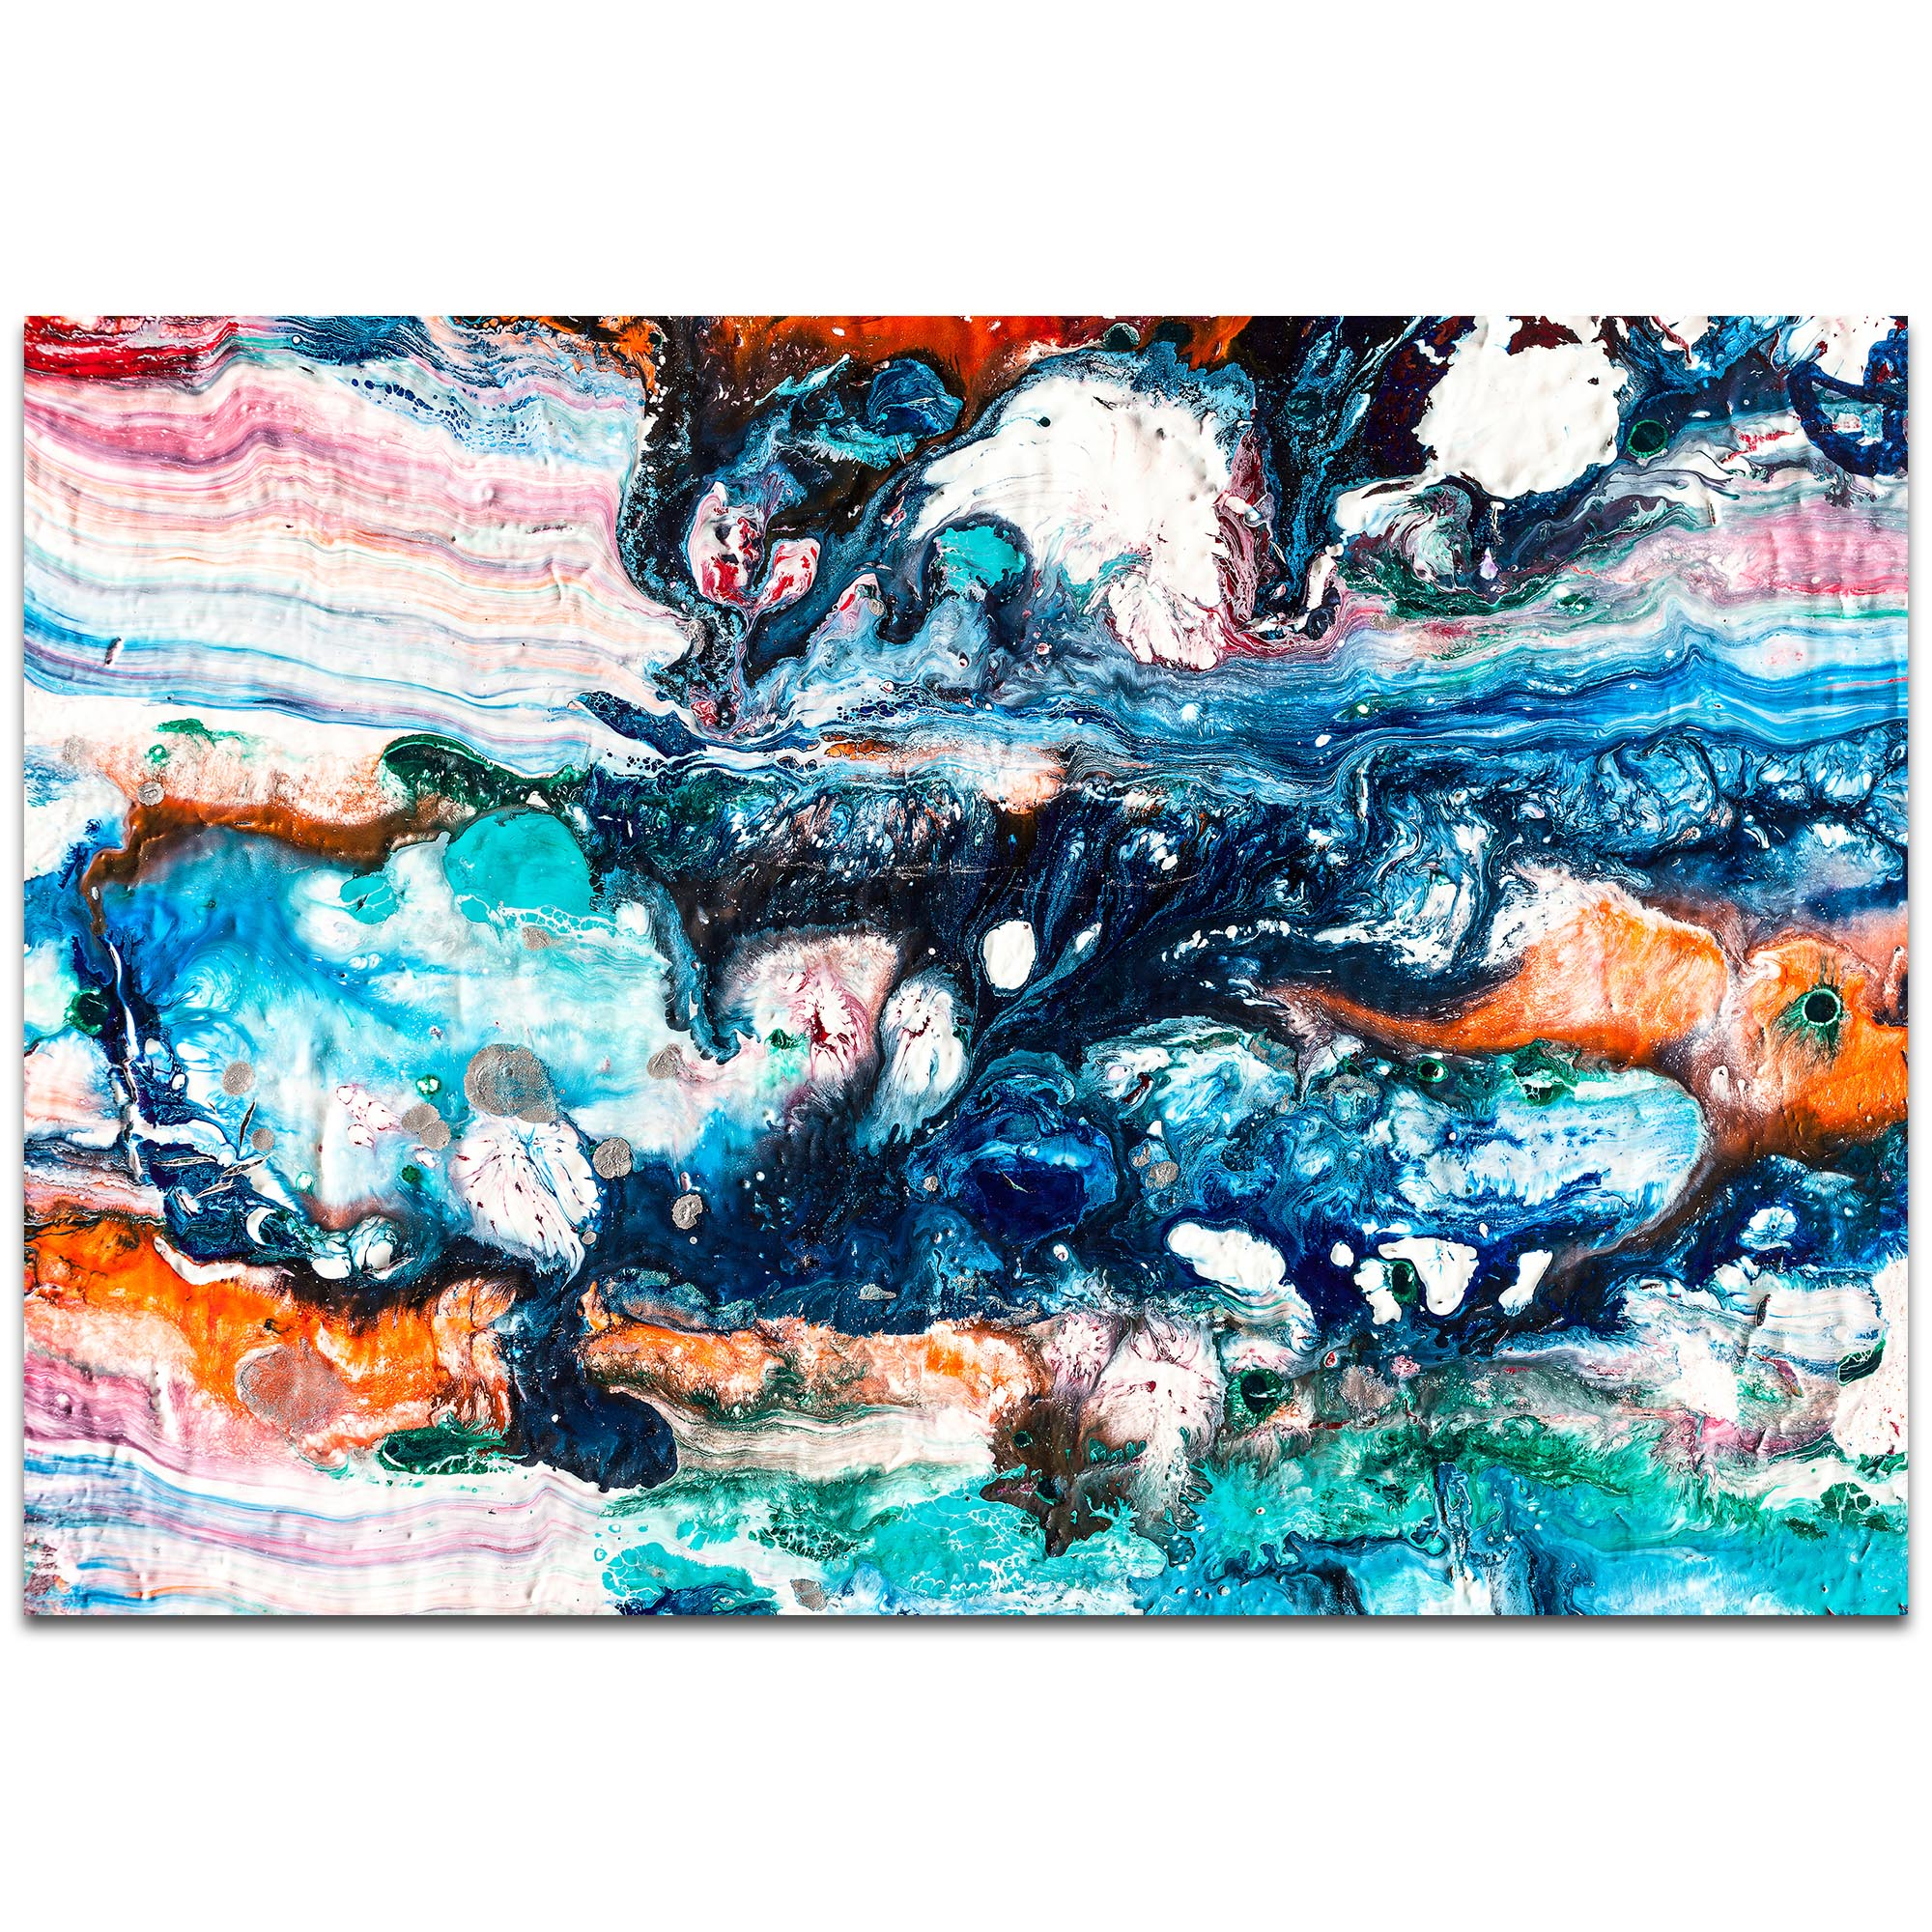 Abstract Wall Art 'Sunset On Her Breath 4' - Colorful Urban Decor on Metal or Plexiglass